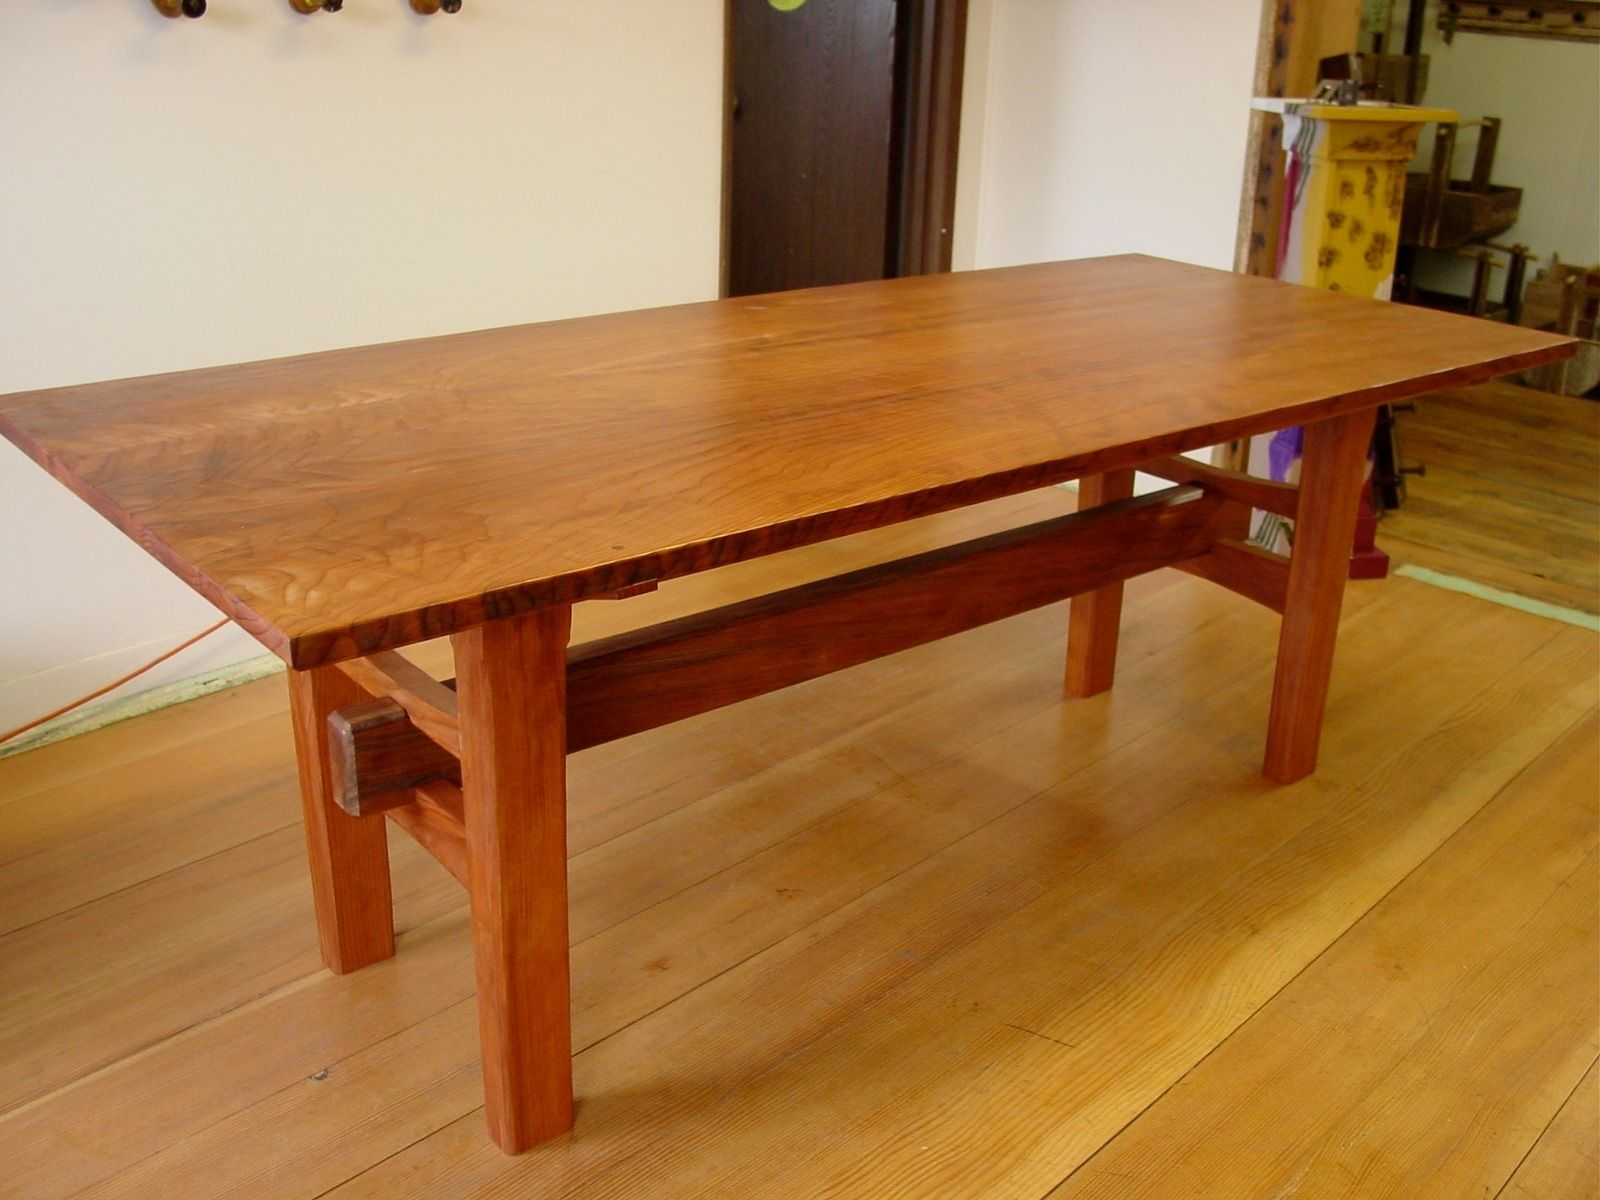 asian inspired dining tables custommade ese accent table redwood with joinery club chair counter high kitchen carpet door threshold baroque nautical side metal bench legs